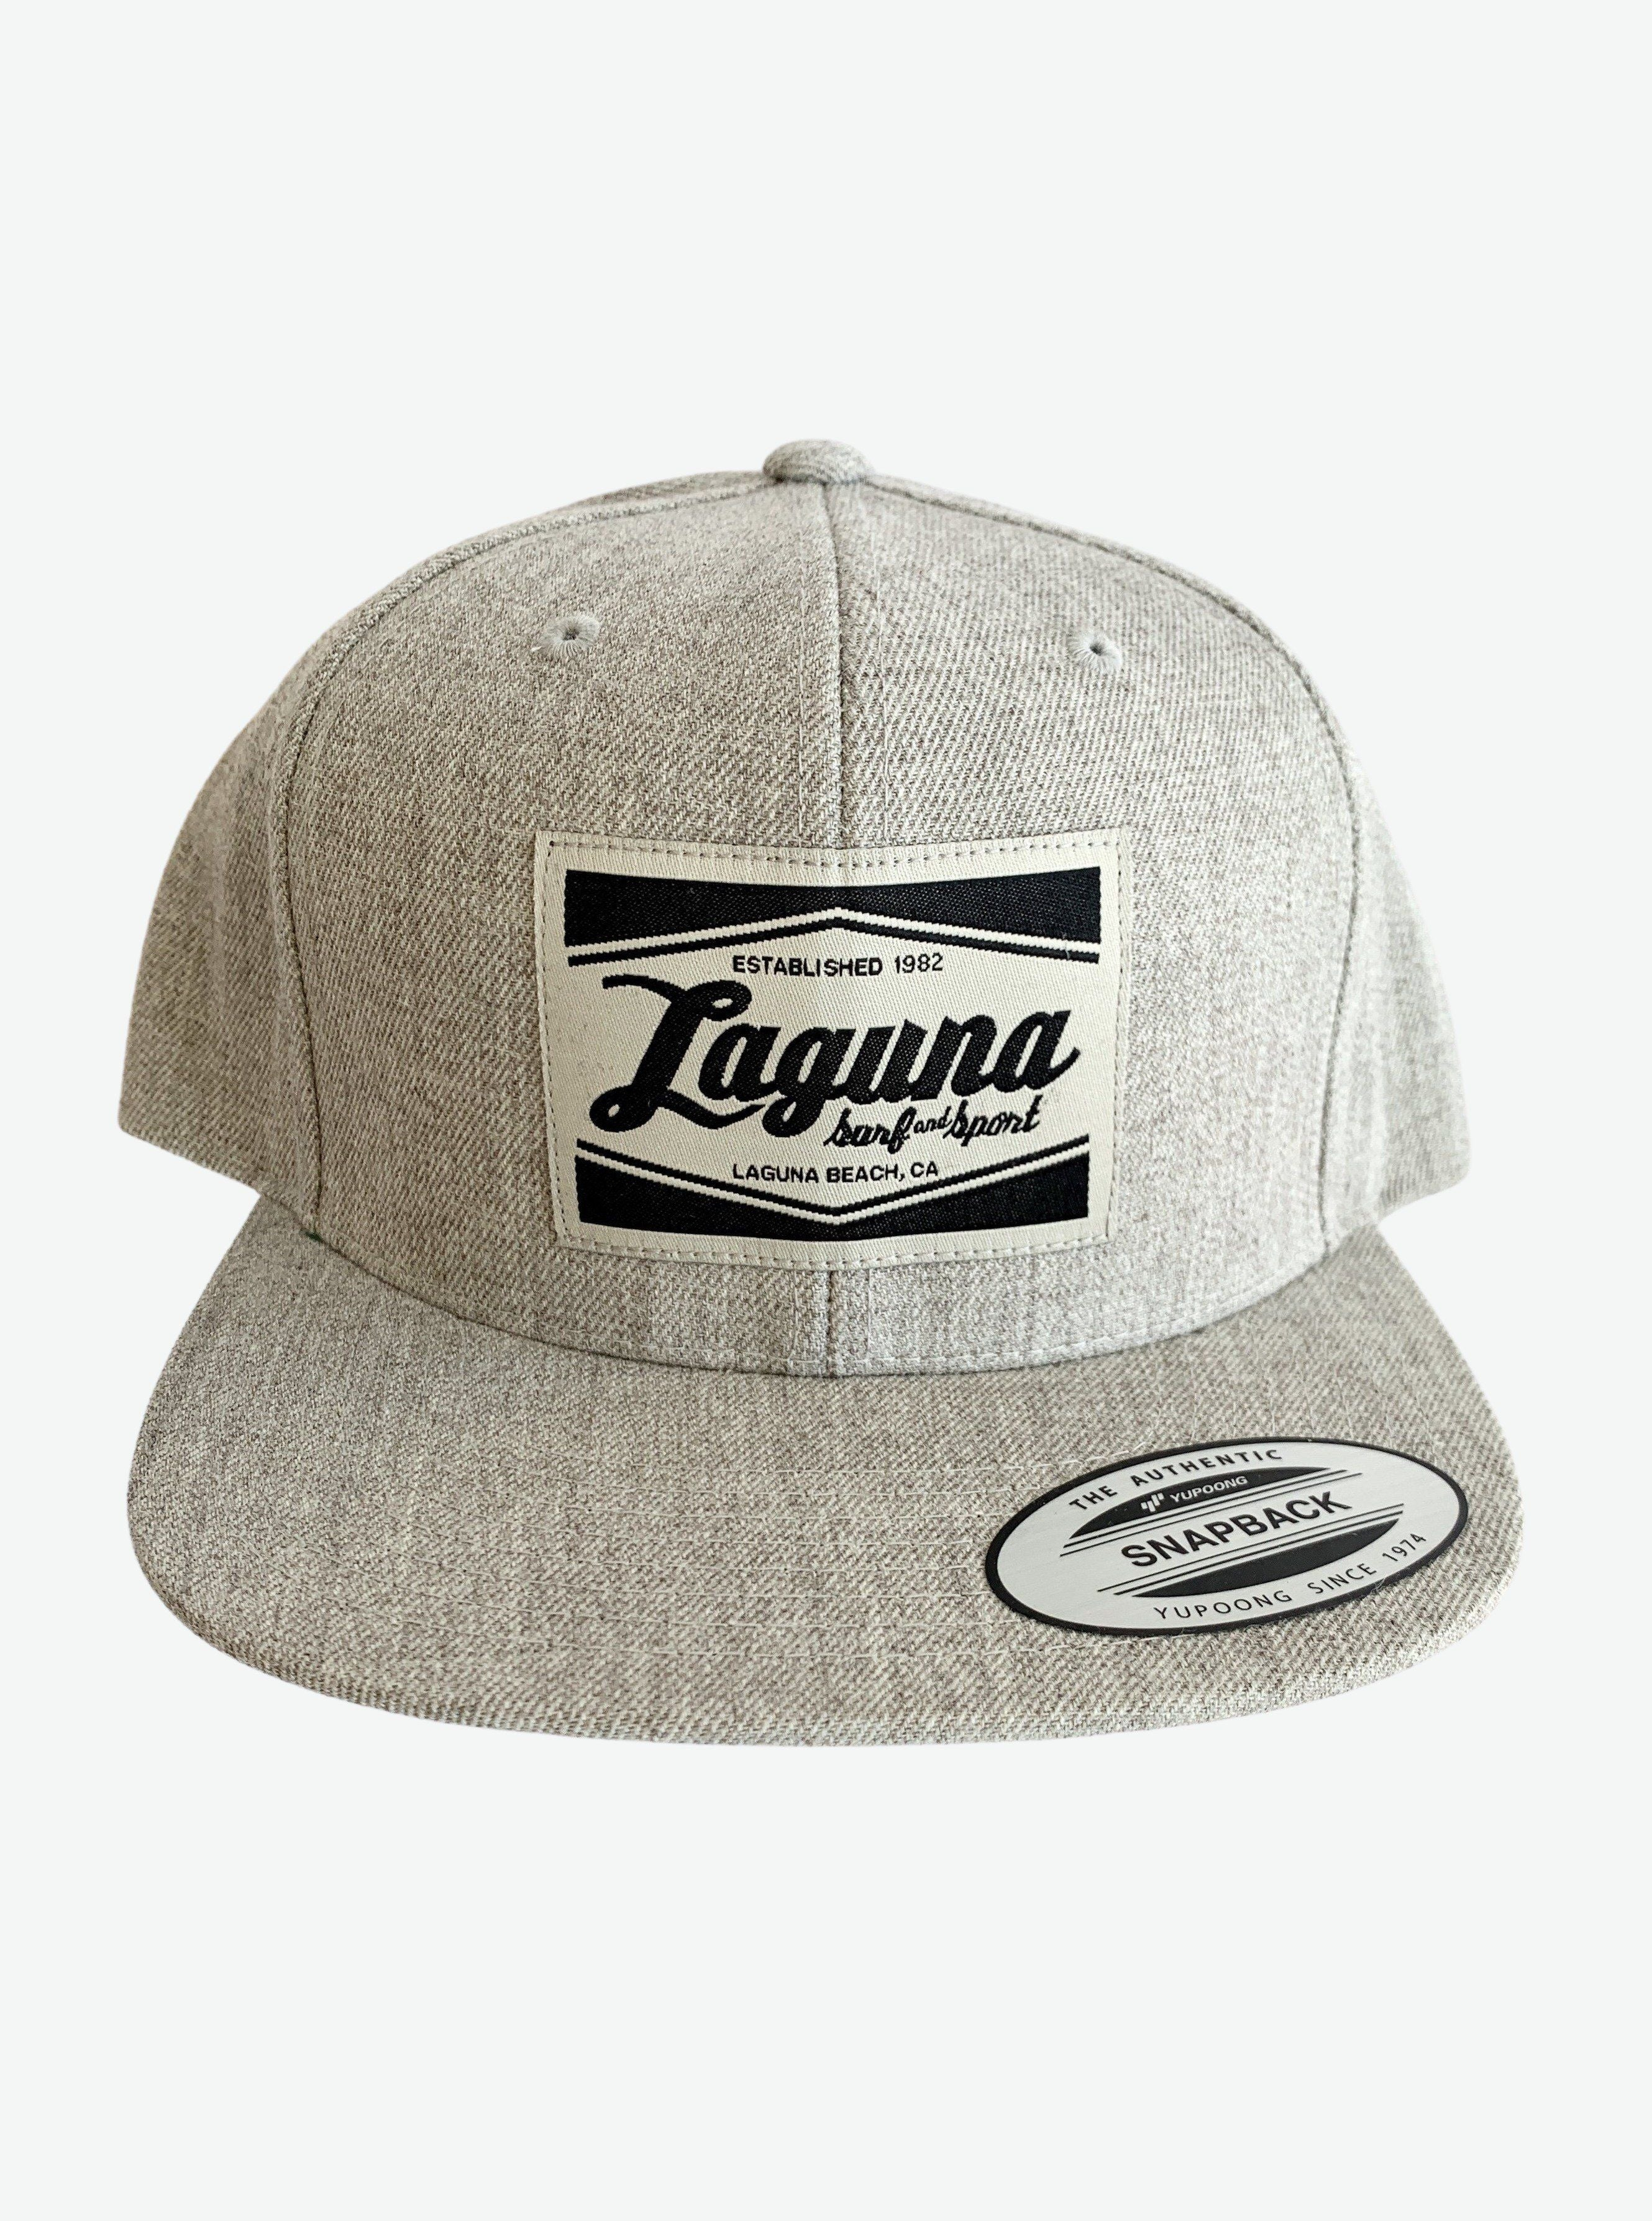 LS&S CLASSIC BOX  Patch Snapback Hat  (More Colors Available)  - Laguna Surf & Sport